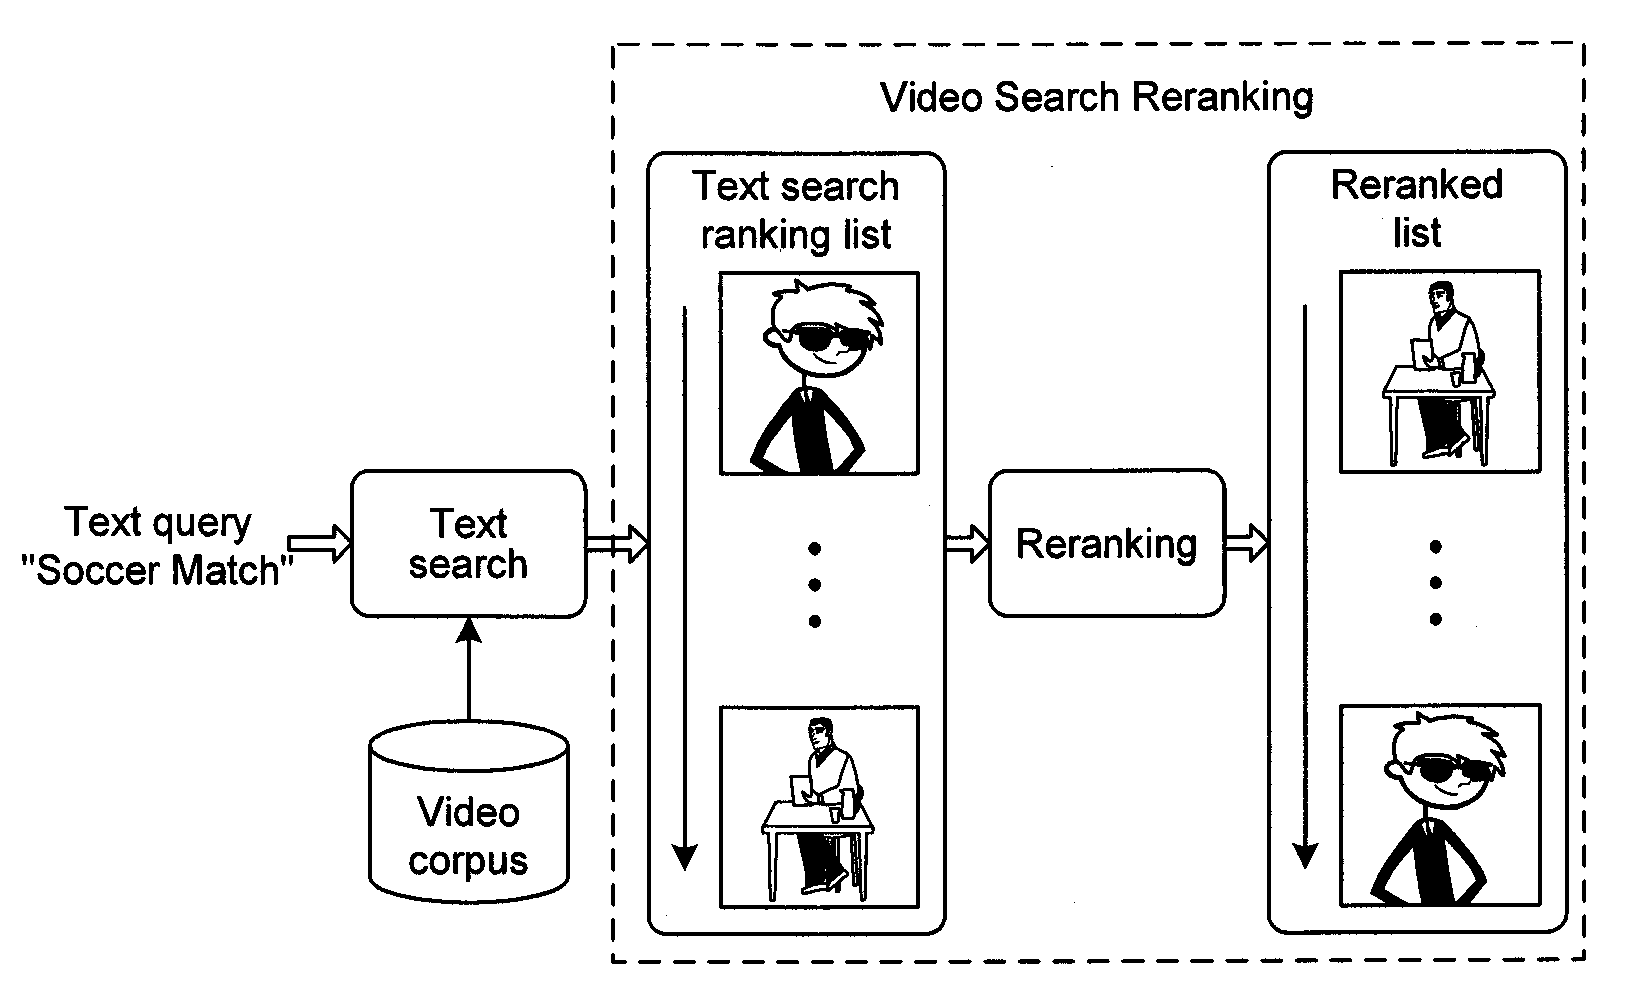 US8180766B2 - Bayesian video search reranking - Google Patents